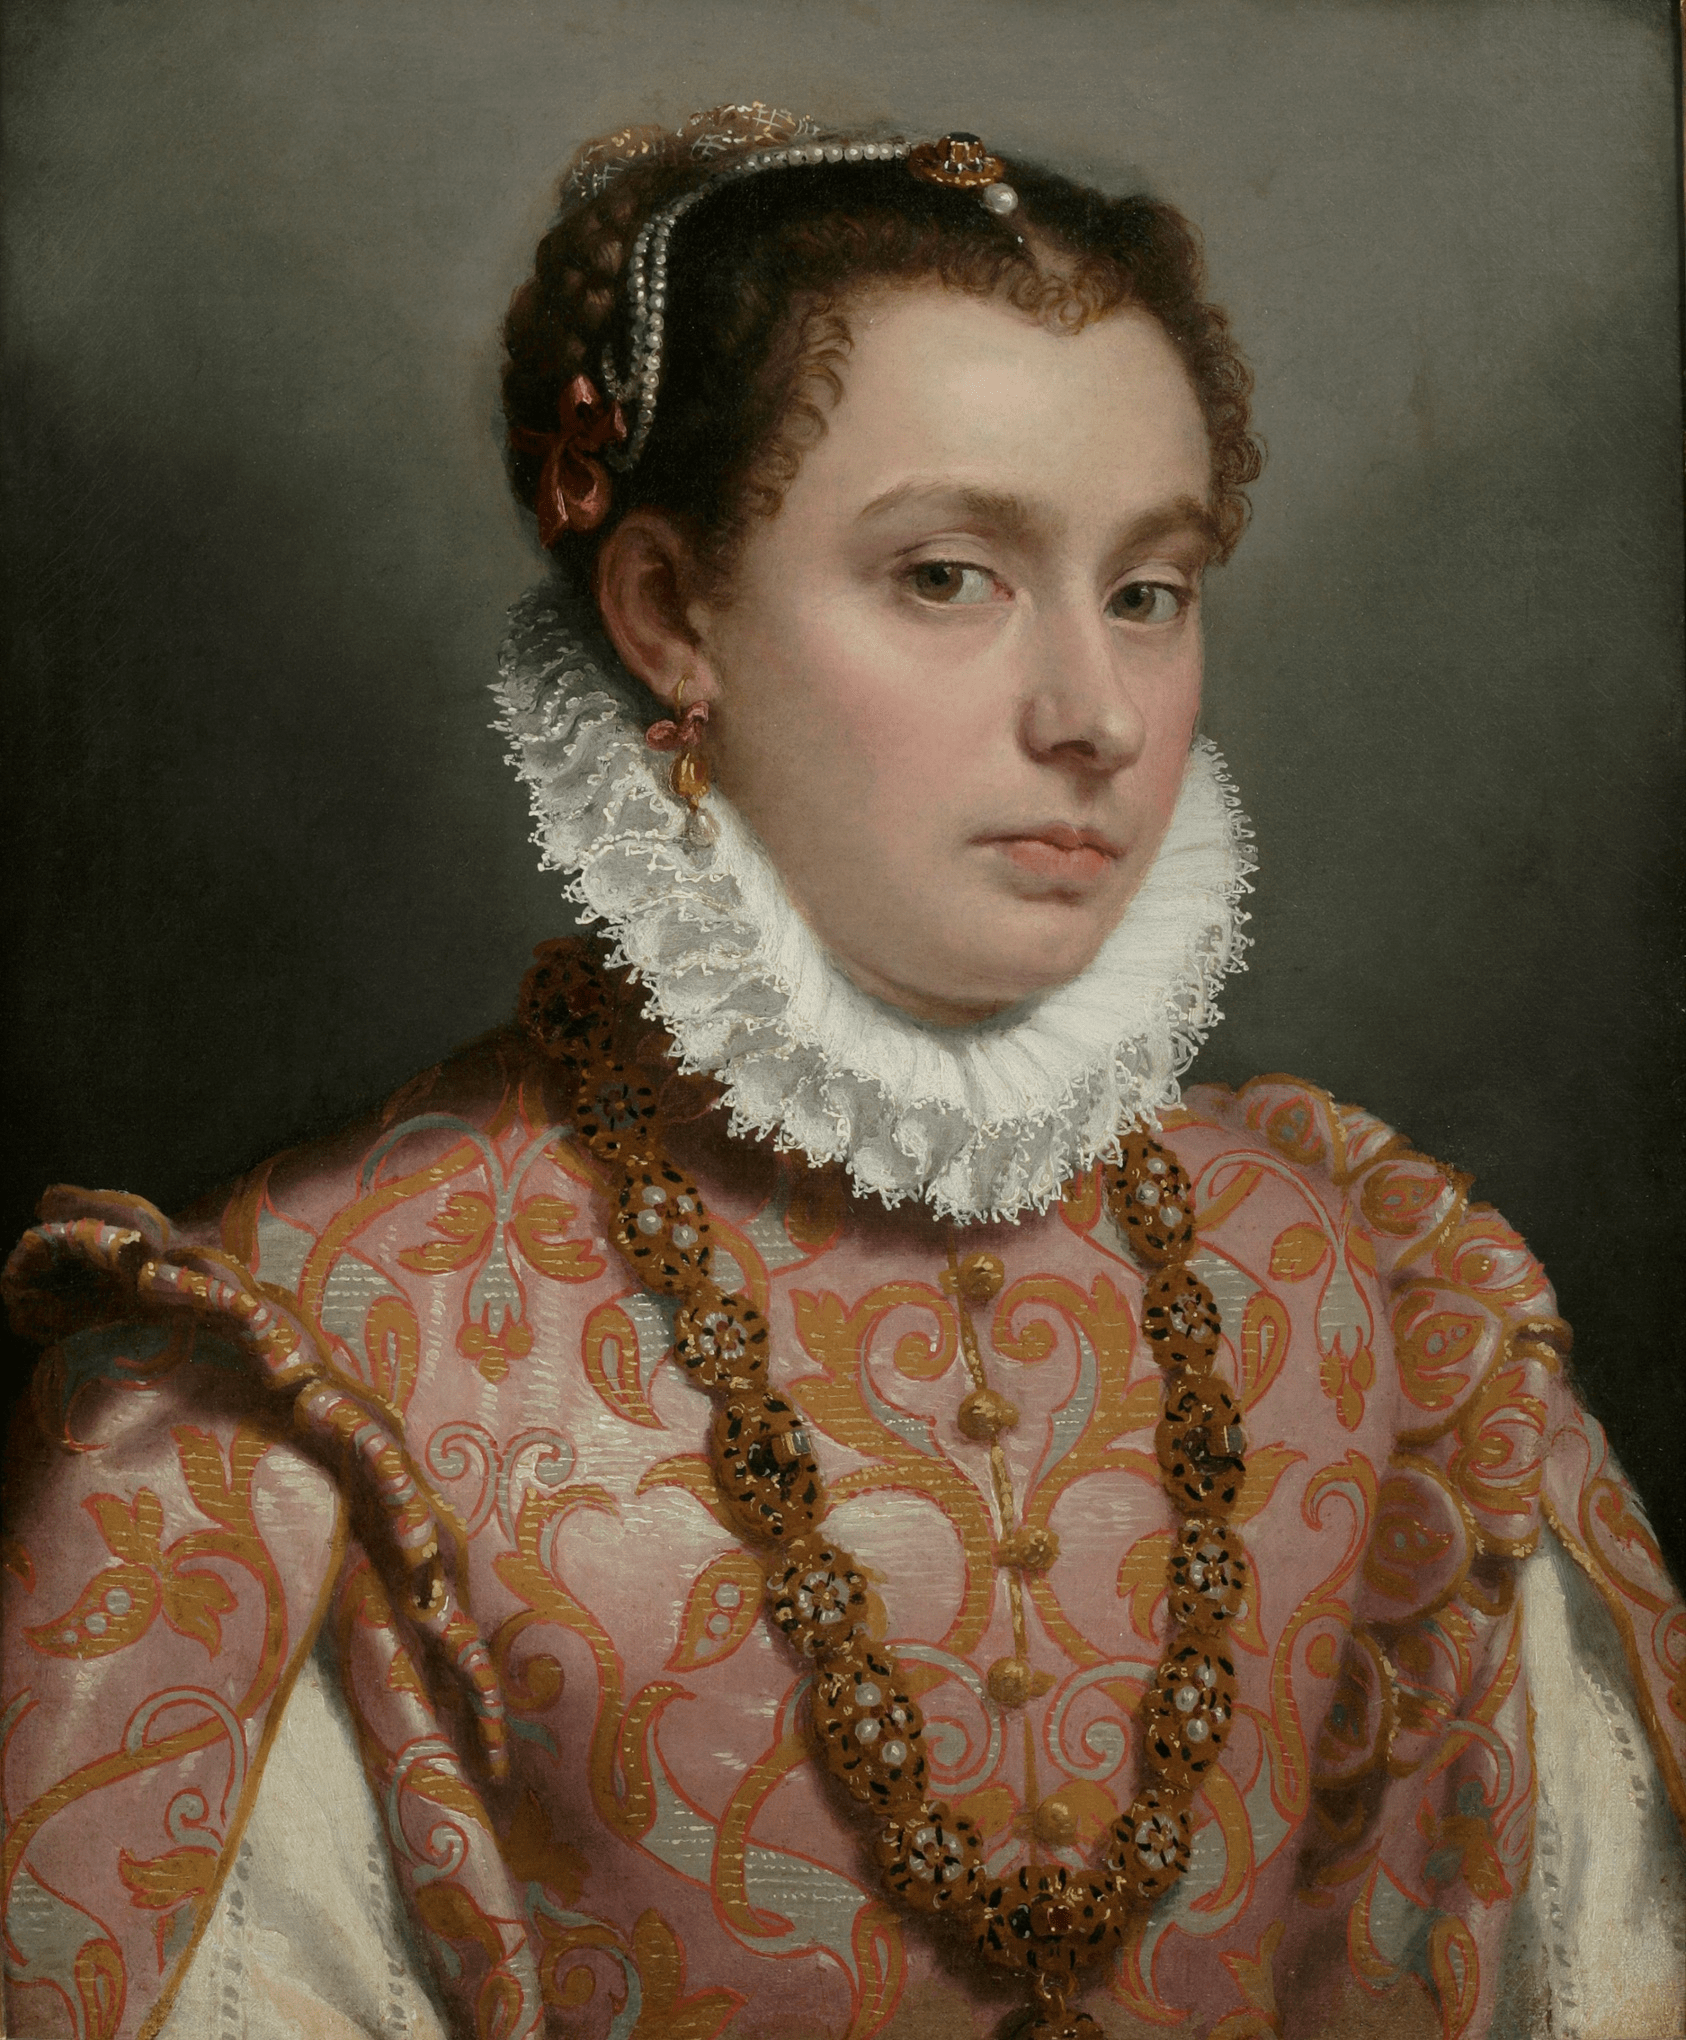 Young Lady, c1560-65. Photograph: Private collection